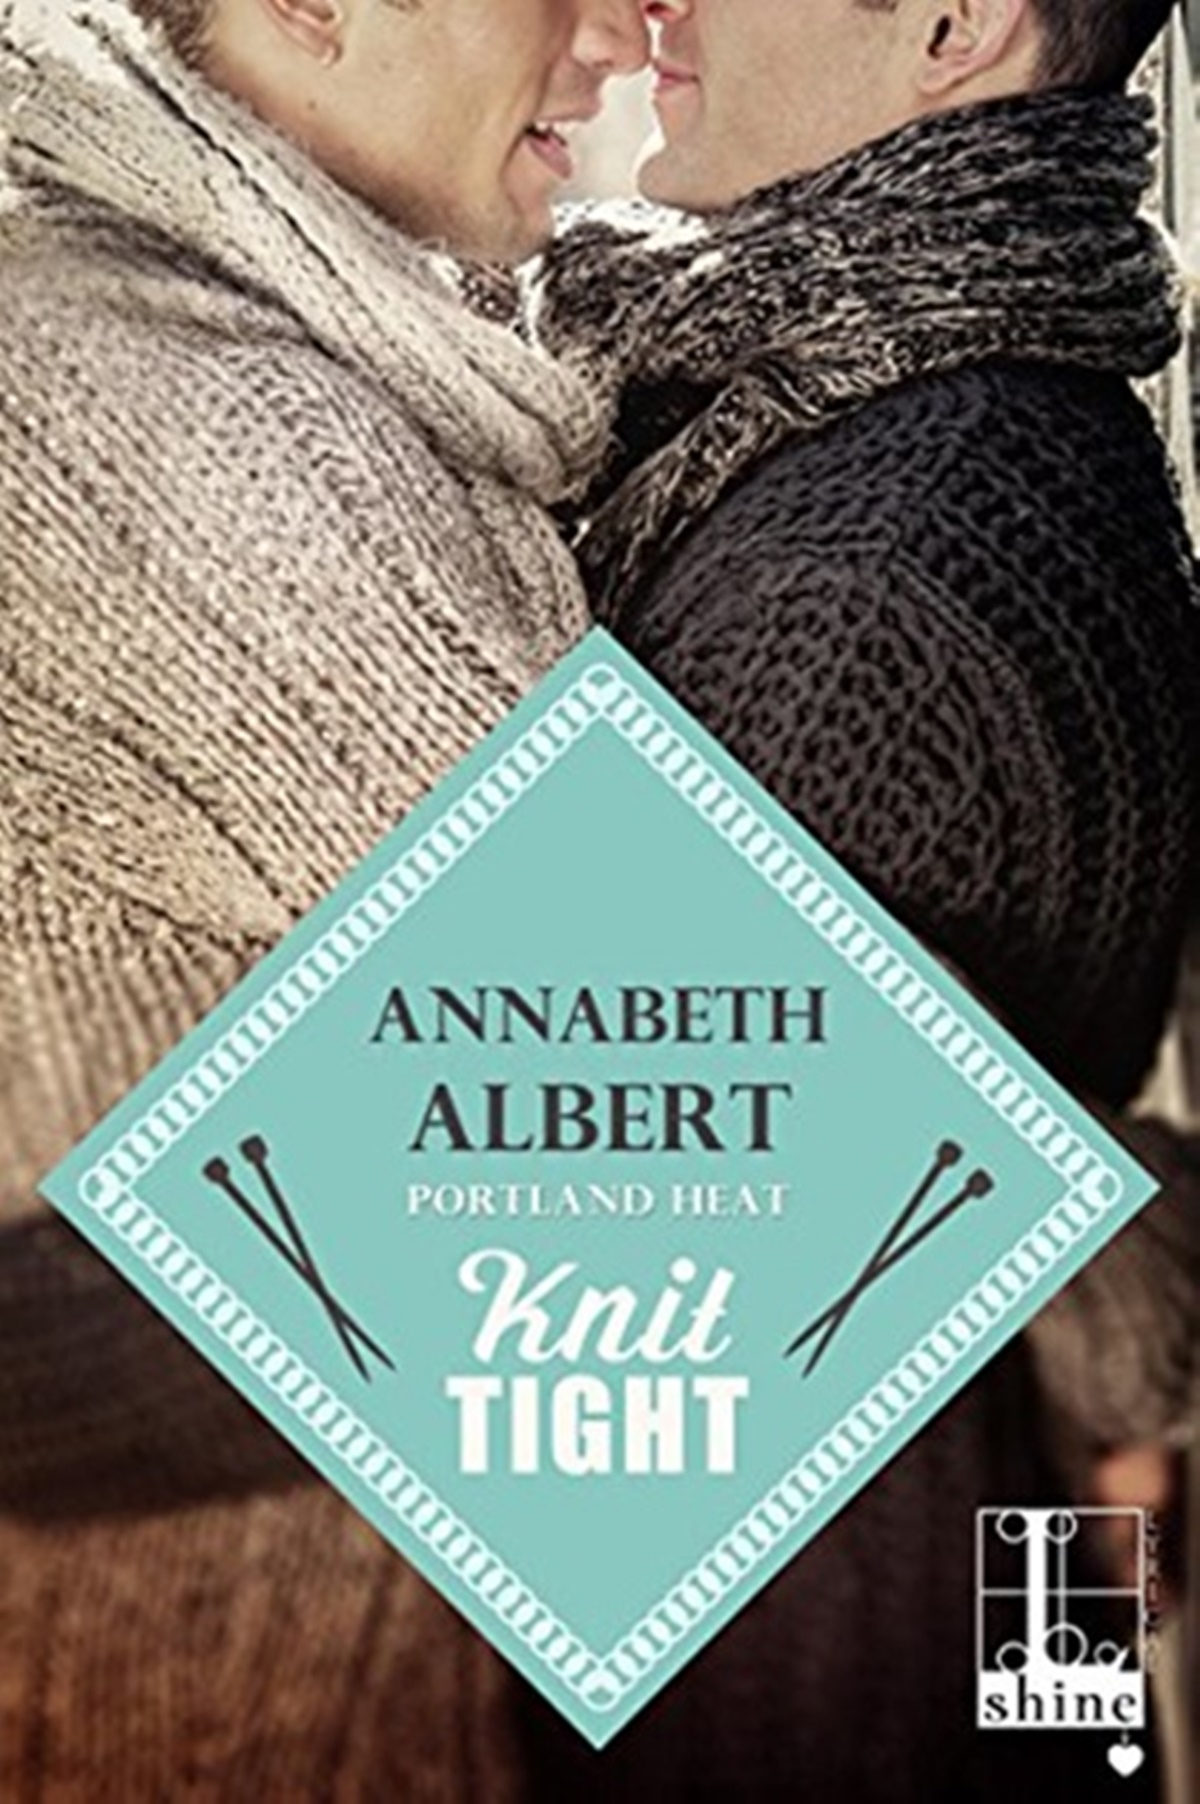 Coffee Shop Romance Novels, cover of Knit Tight by Annabeth Albert, books